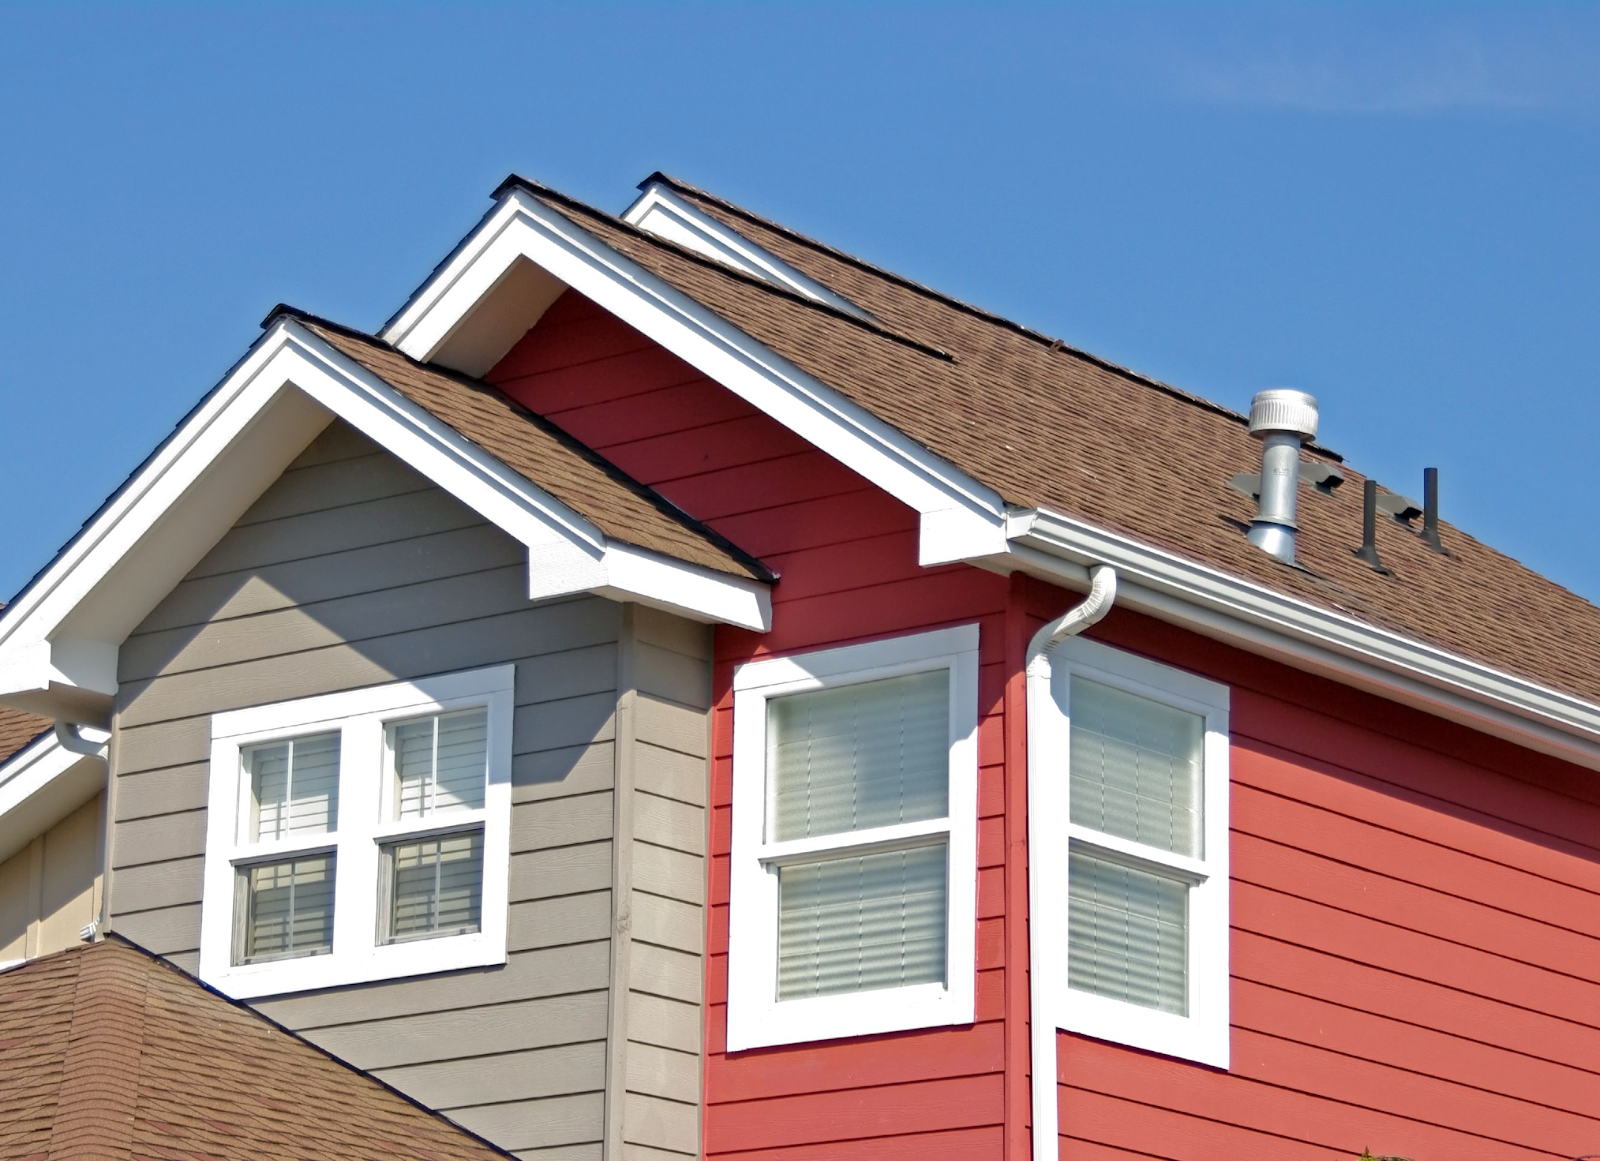 Is roofing important for your house?